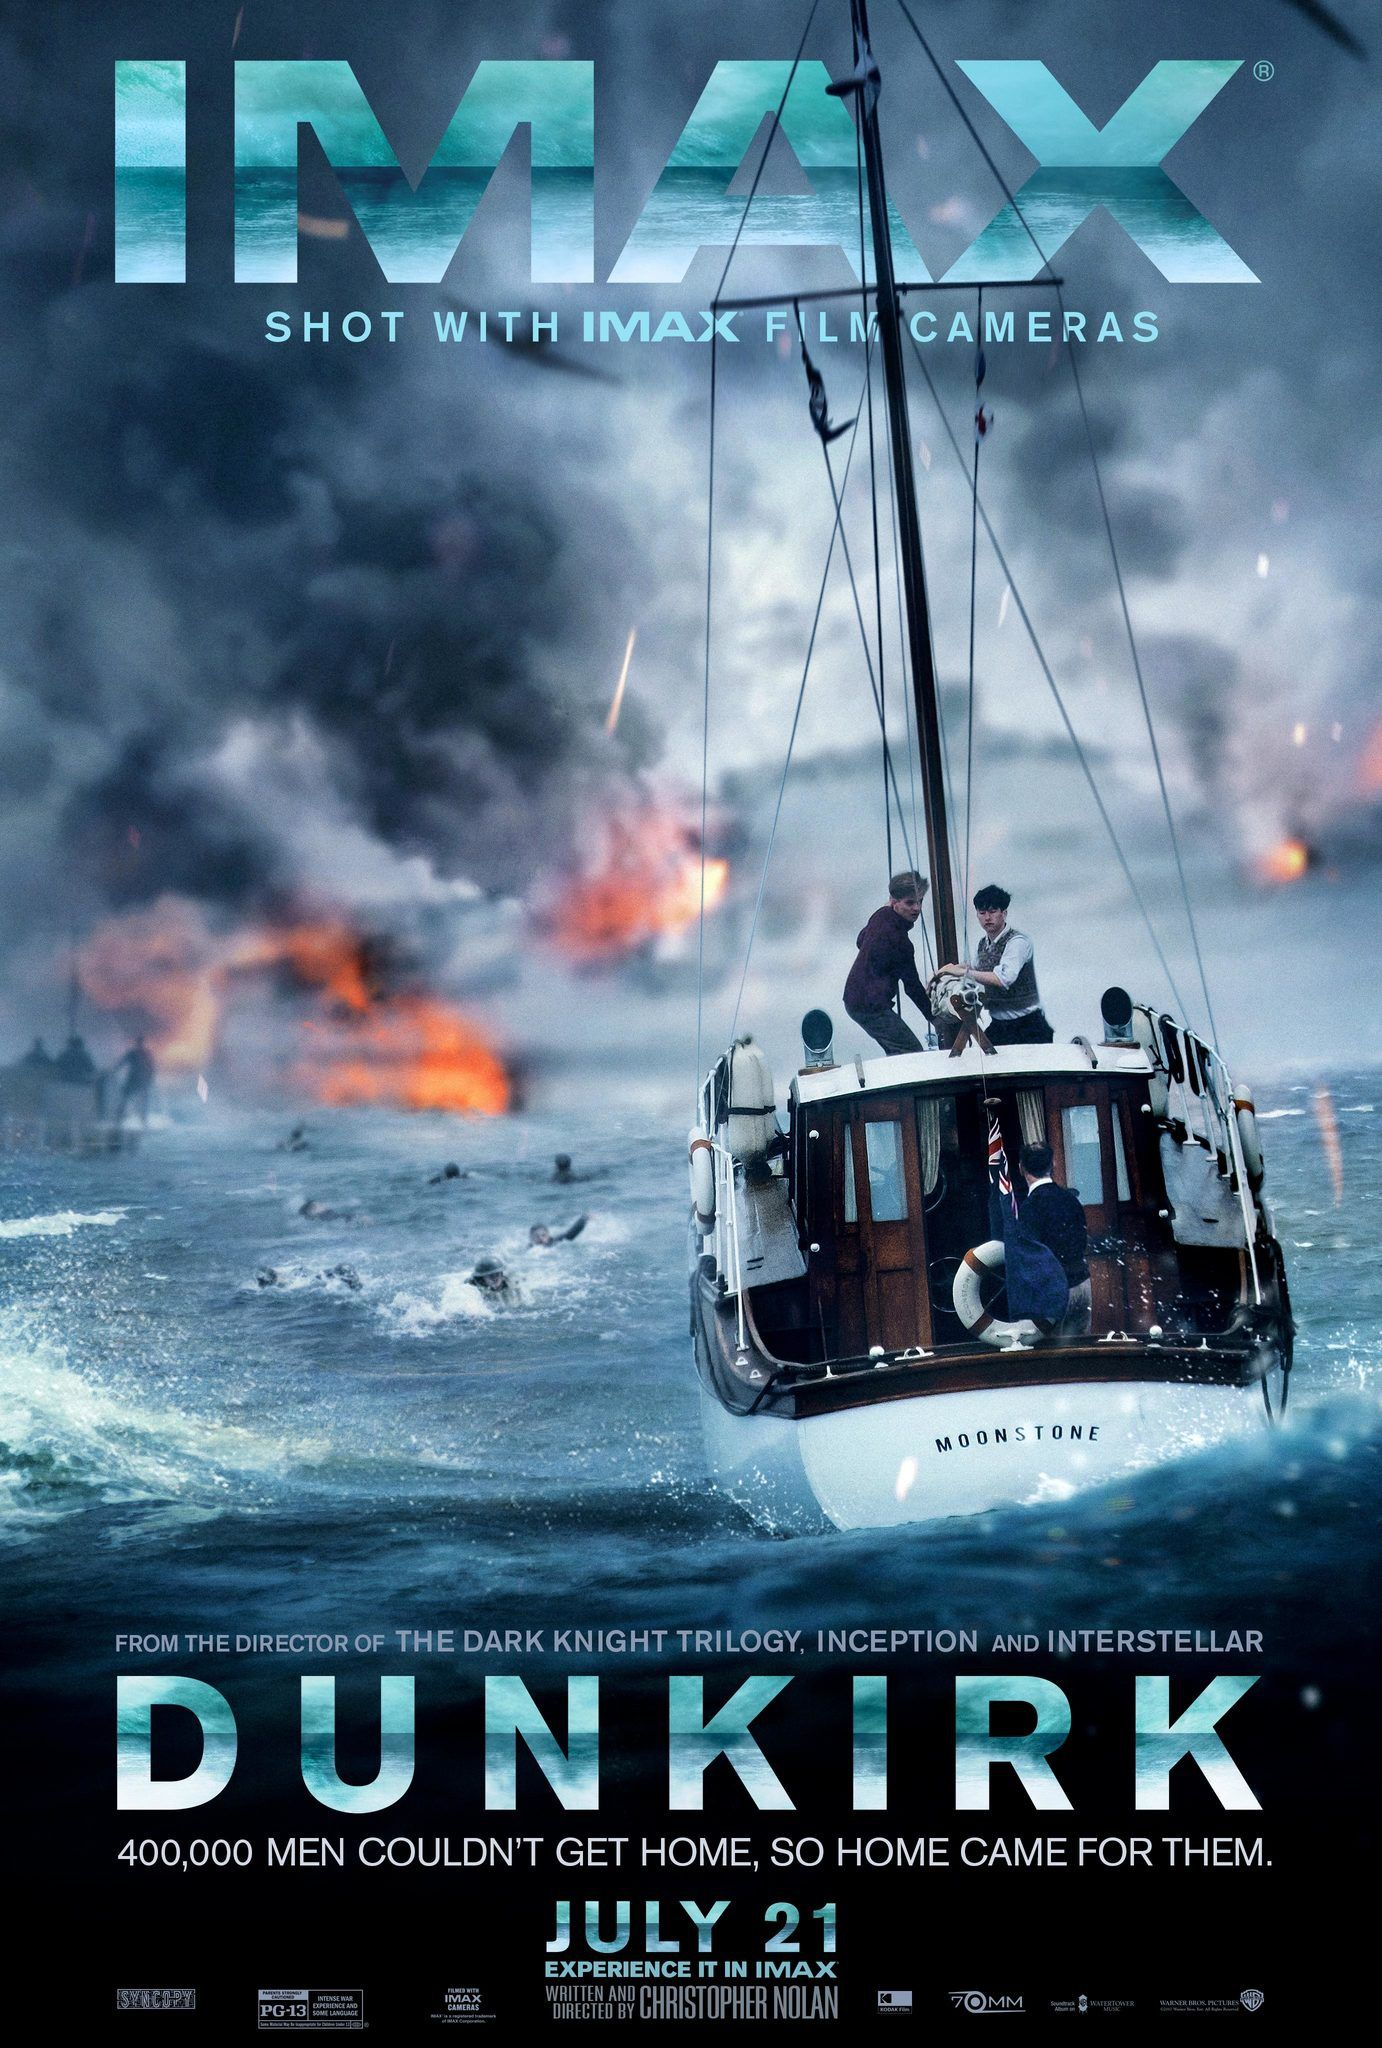 Dunkirk 2017 hd wallpaper from gallsource movie posters dunkirk 2017 hd wallpaper from gallsource voltagebd Choice Image